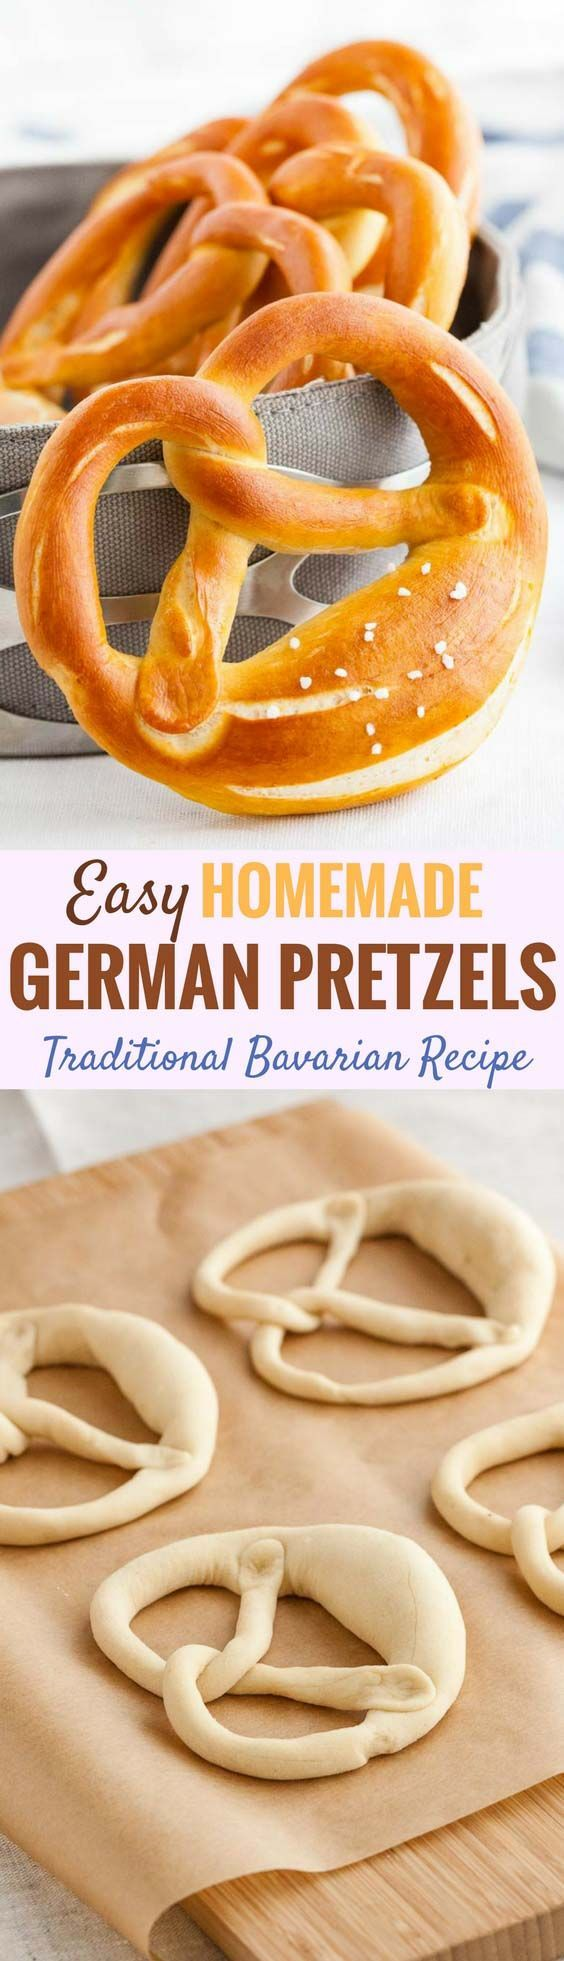 These Bavarian pretzels are a very popular snack in Germany and perfect for your next Oktoberfest party! They taste delicious dipped in cheese sauce and are easy to make at home with simple ingredients. #germanpretzels #germanrecipes #softpretzels #pretzels #oktoberfestrecipes